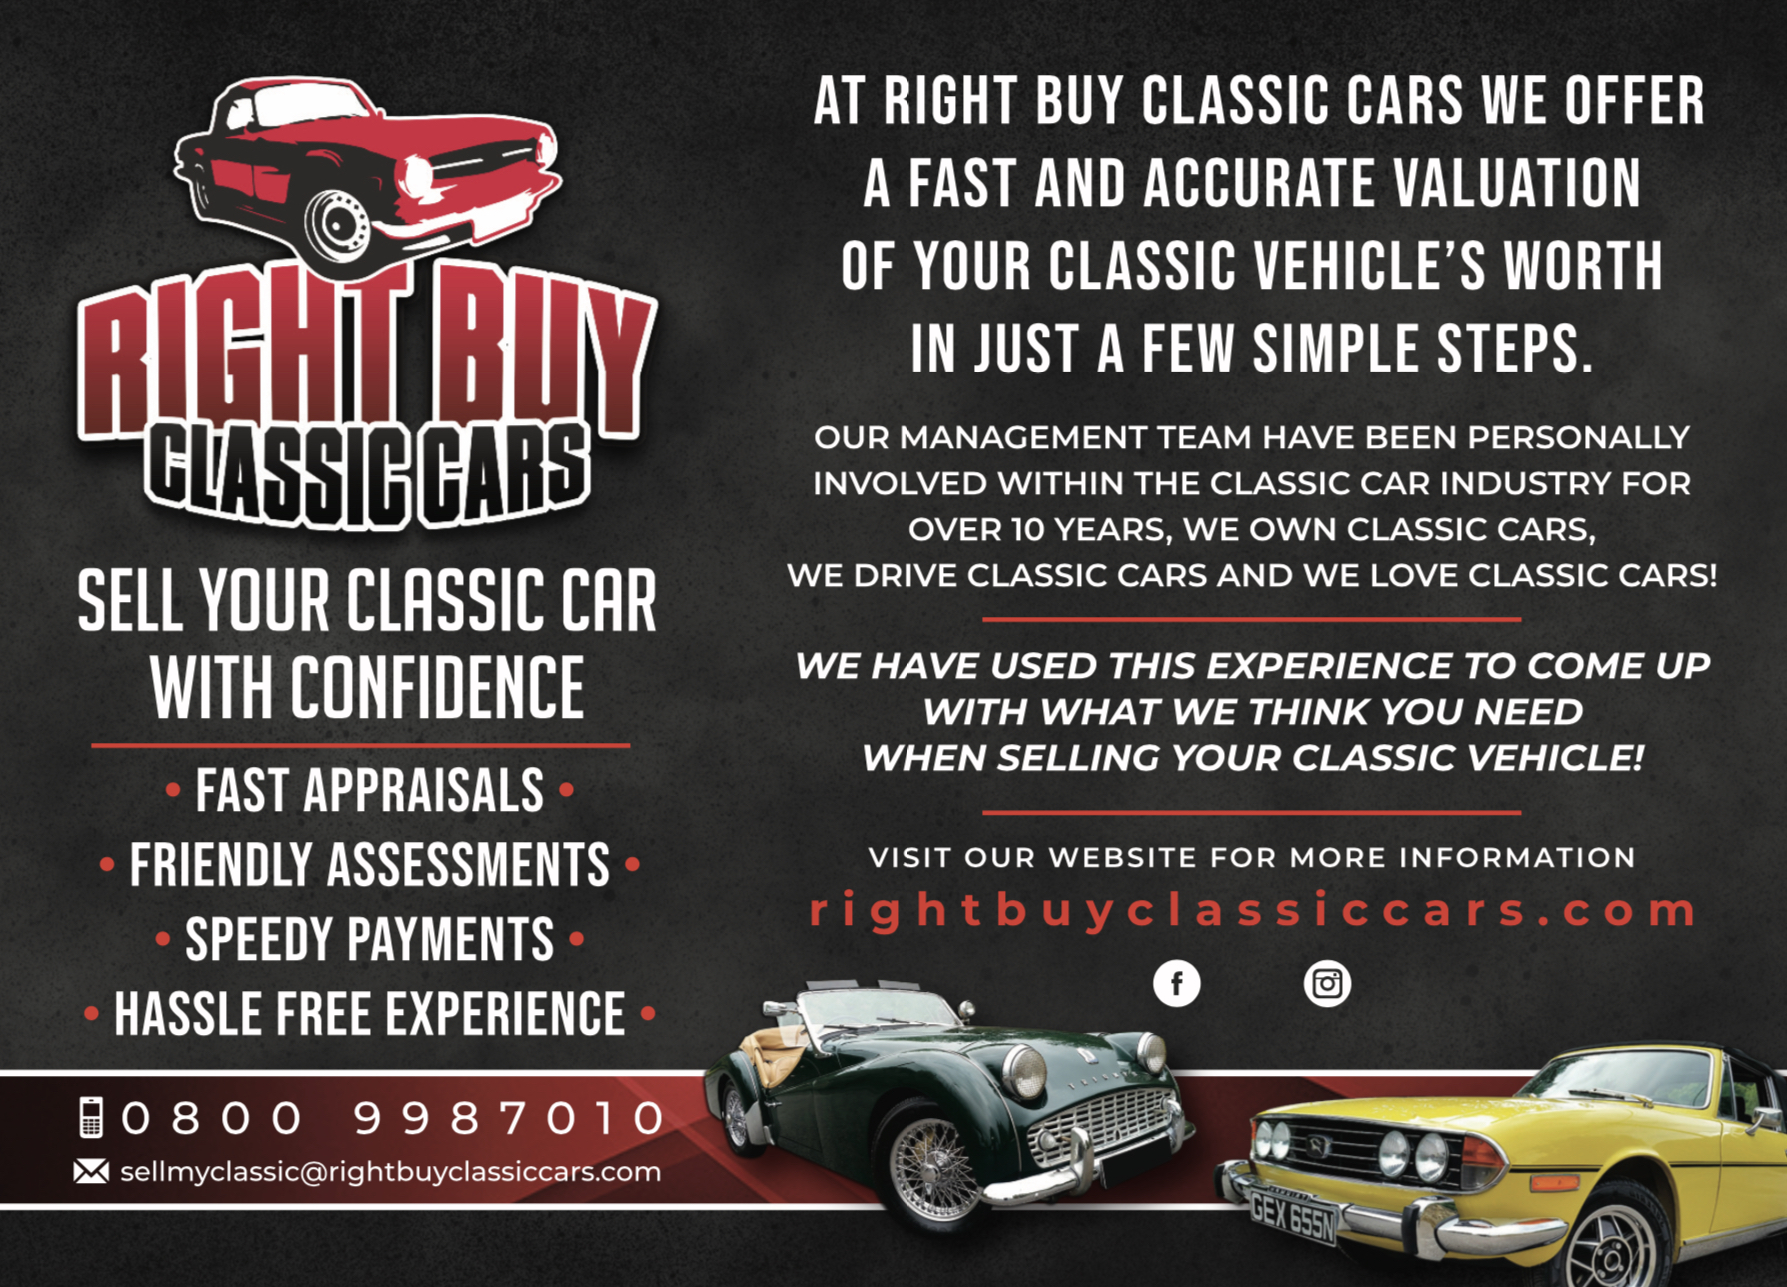 Right Buy Classic Cars - Valuation appraisal buyer